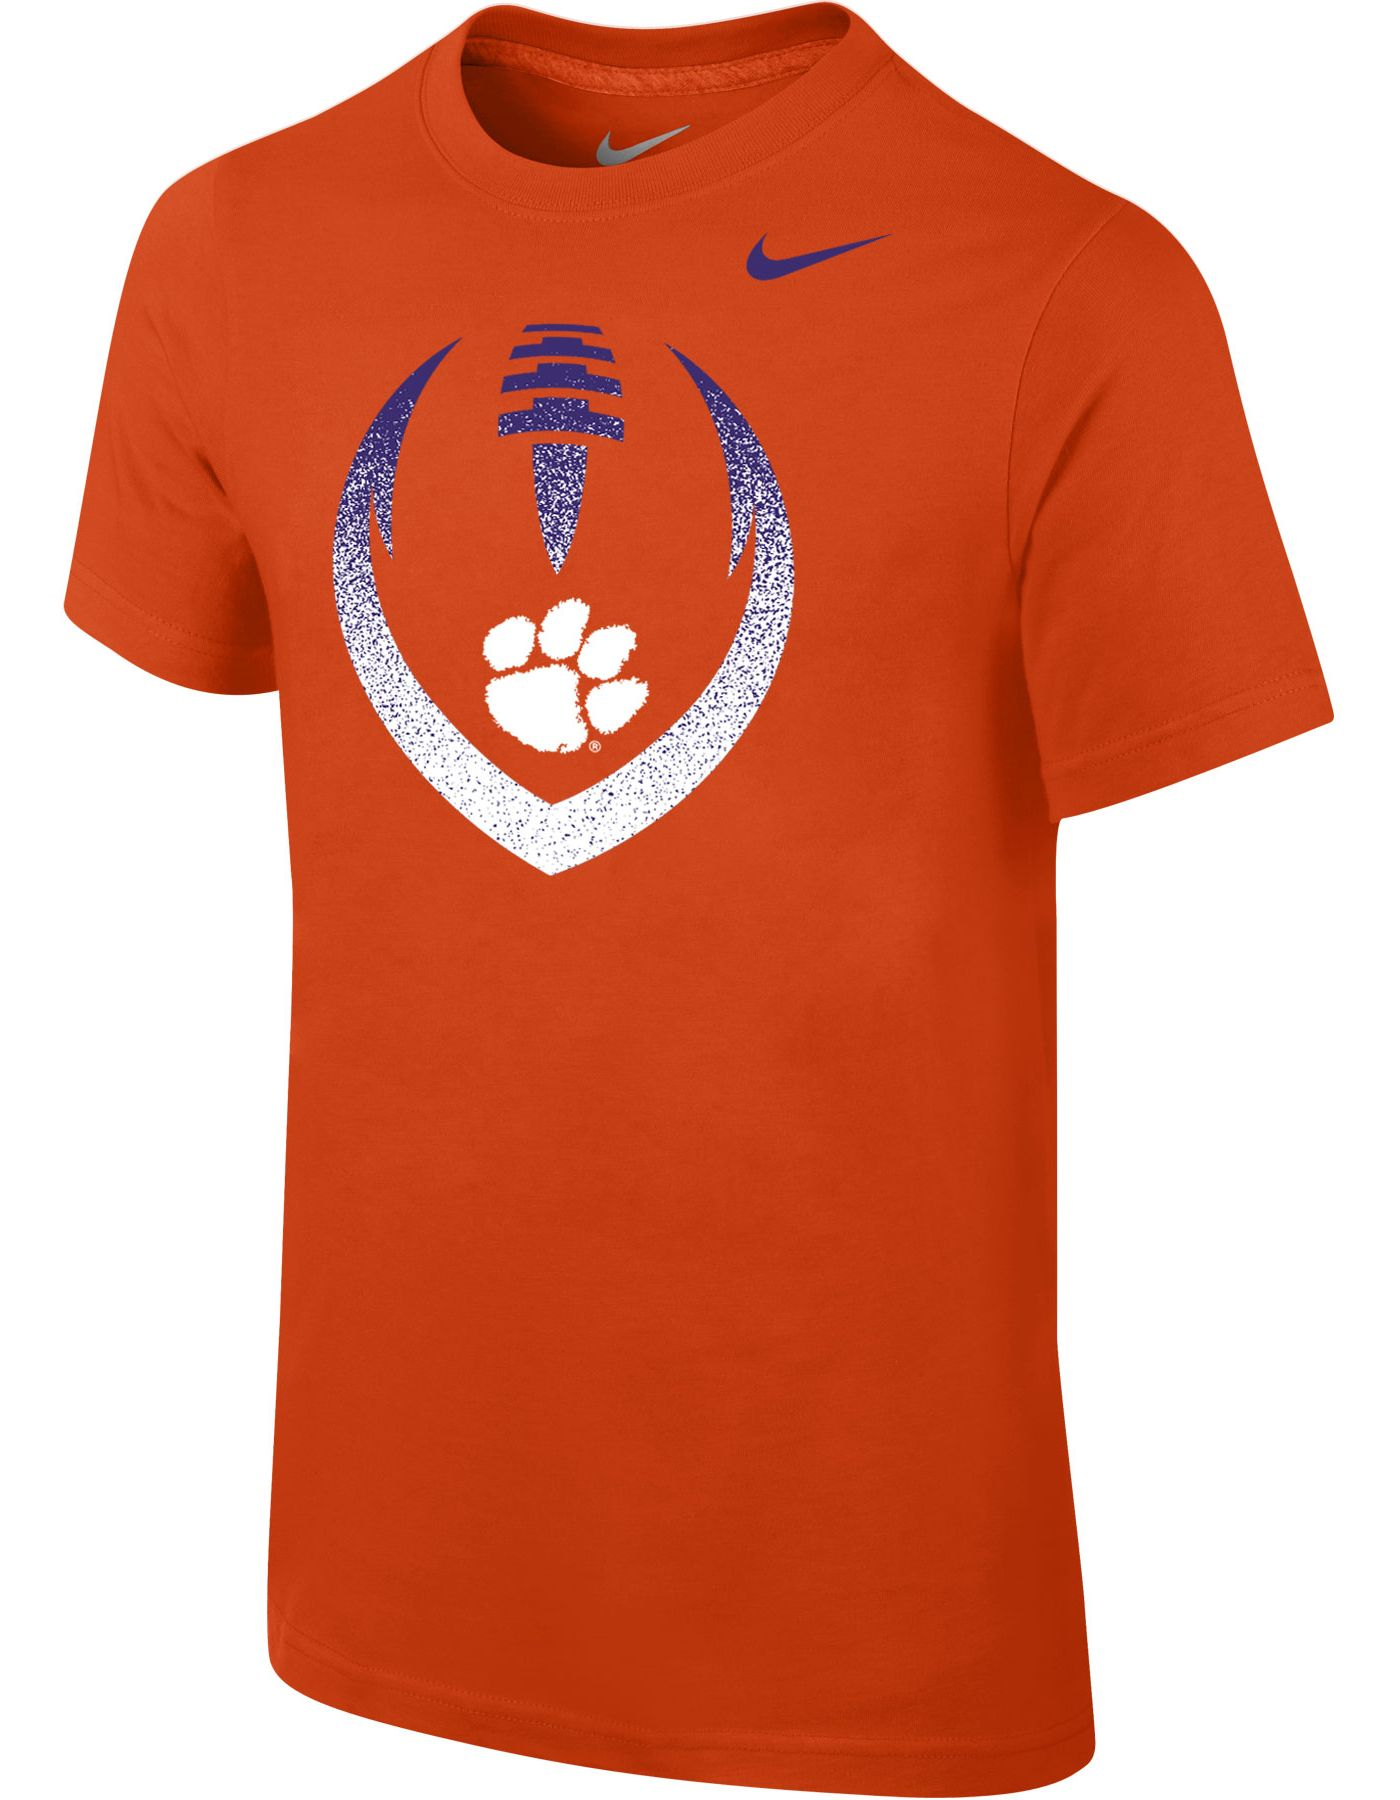 Nike Youth Clemson Tigers Orange Cotton Football Icon T-Shirt